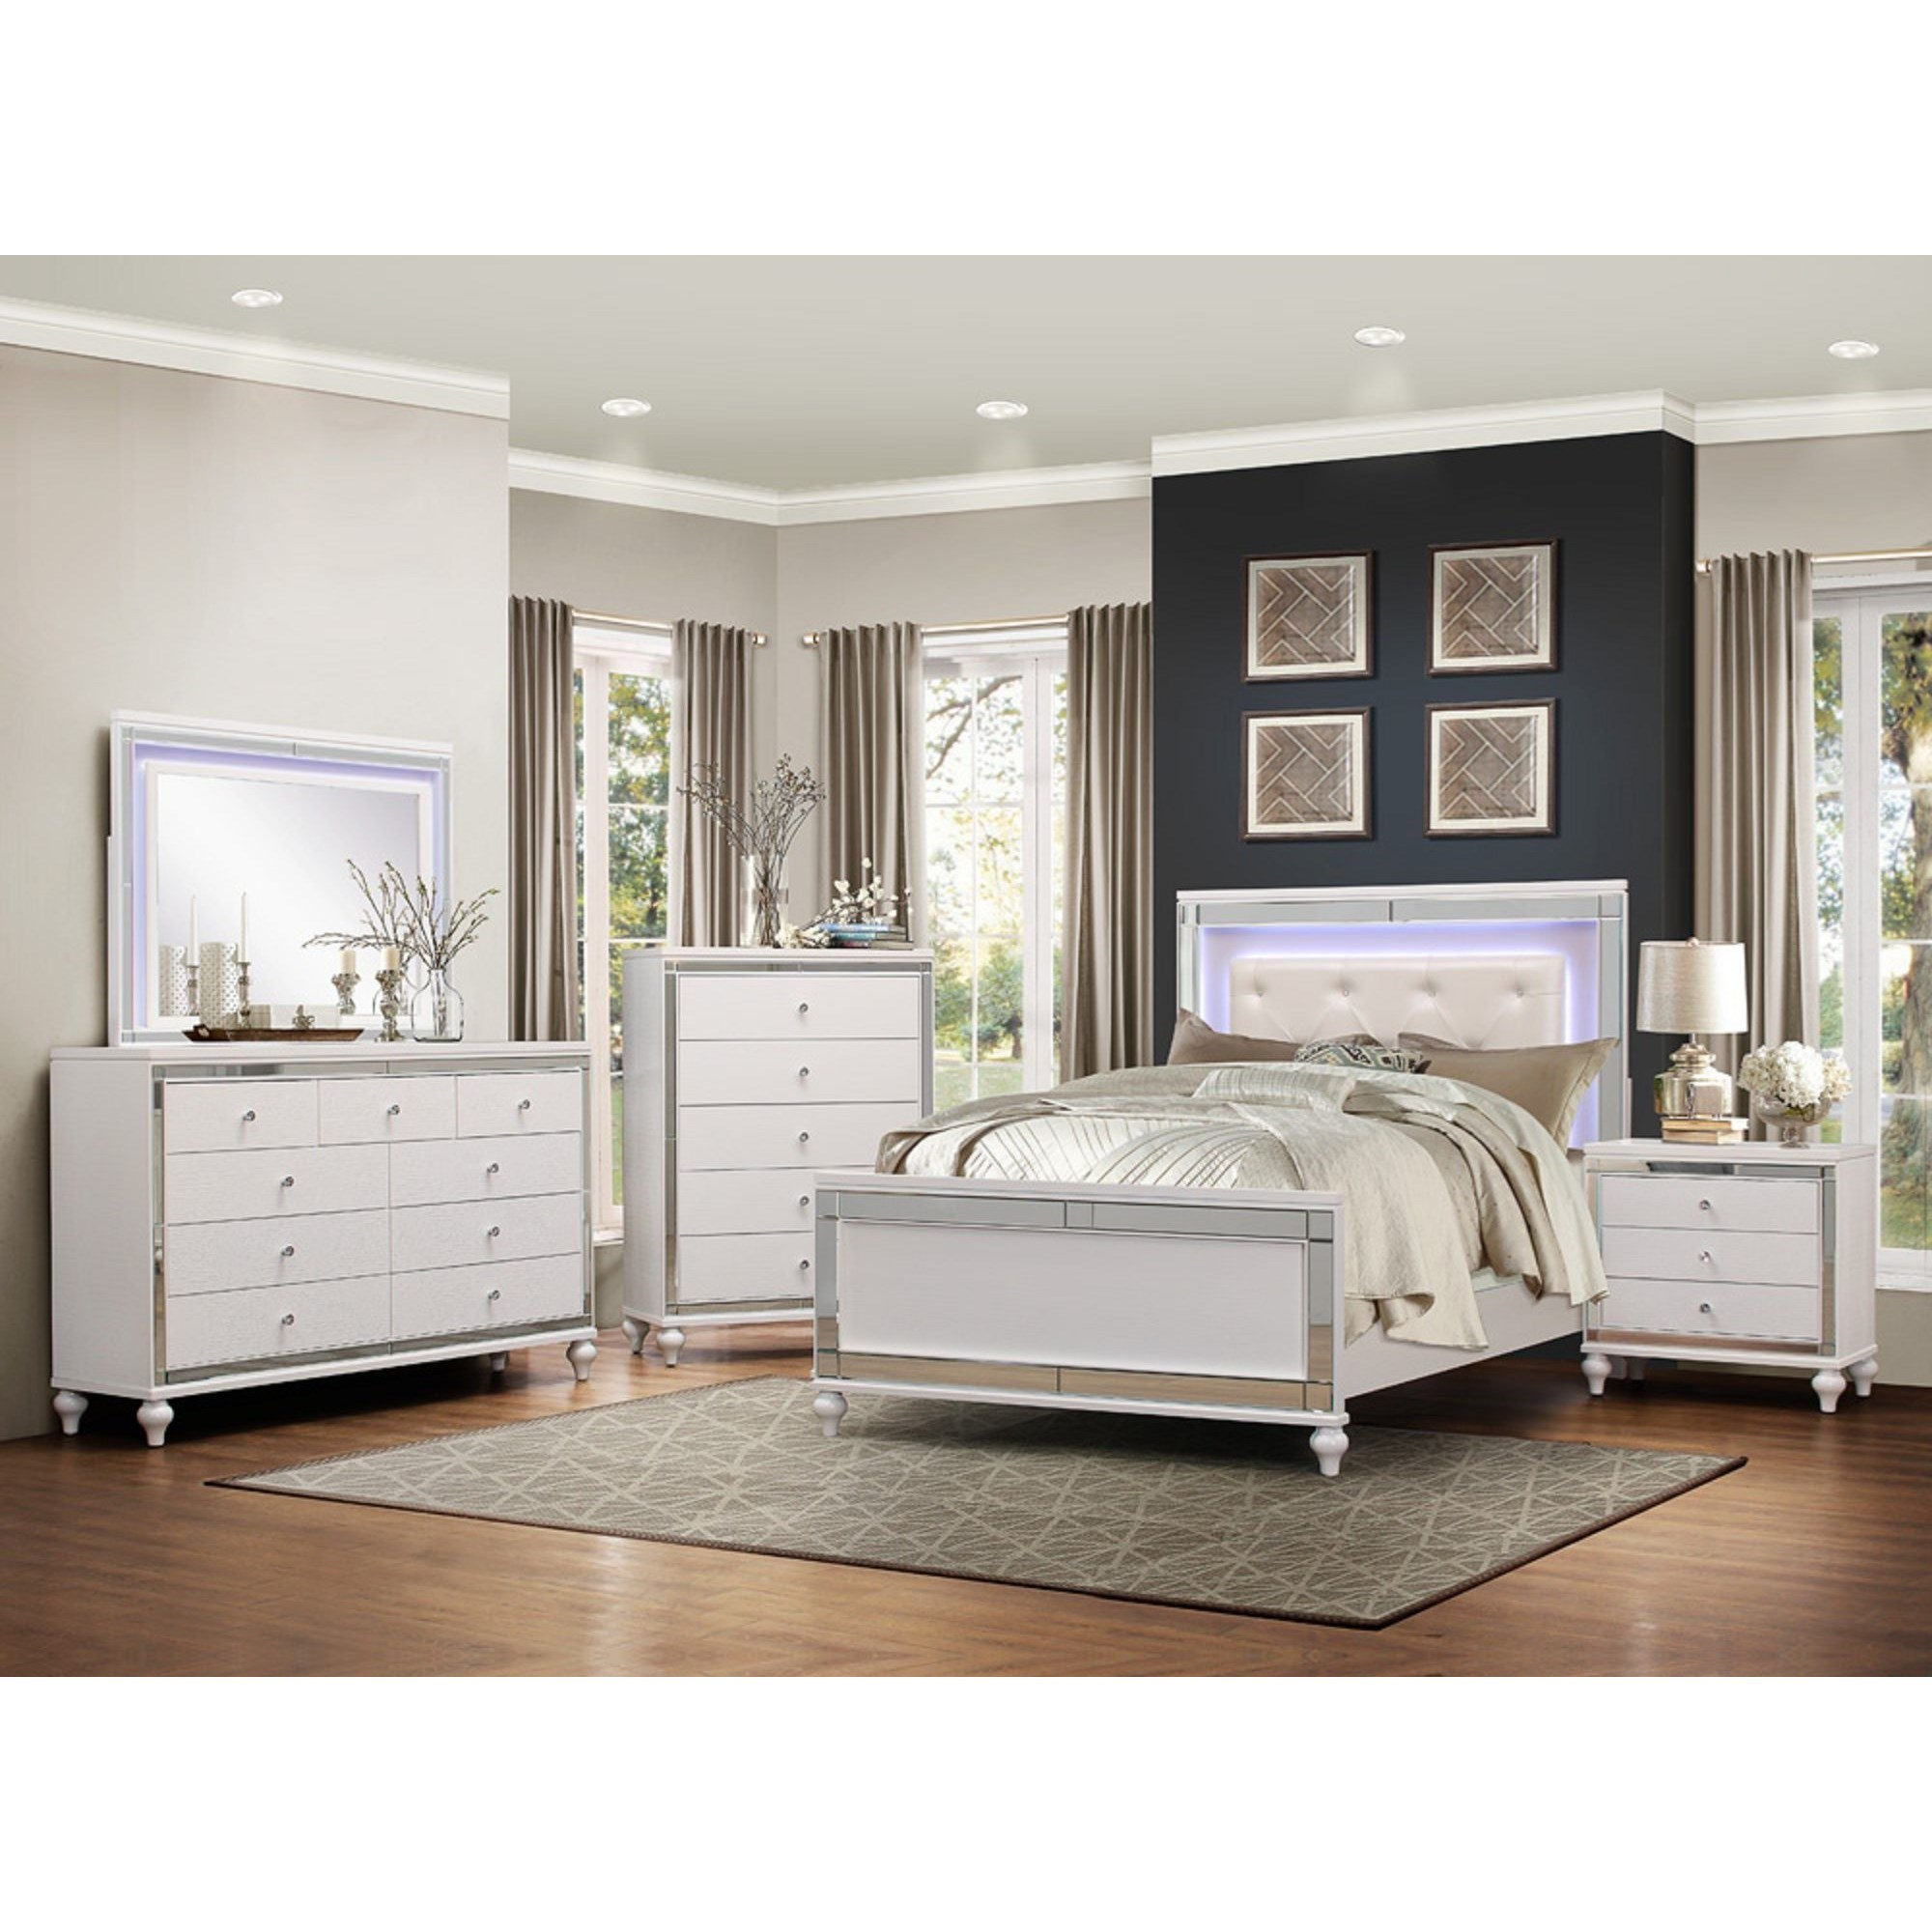 Alonza Cal King Bedroom Group without Chest by Homelegance at Value City Furniture